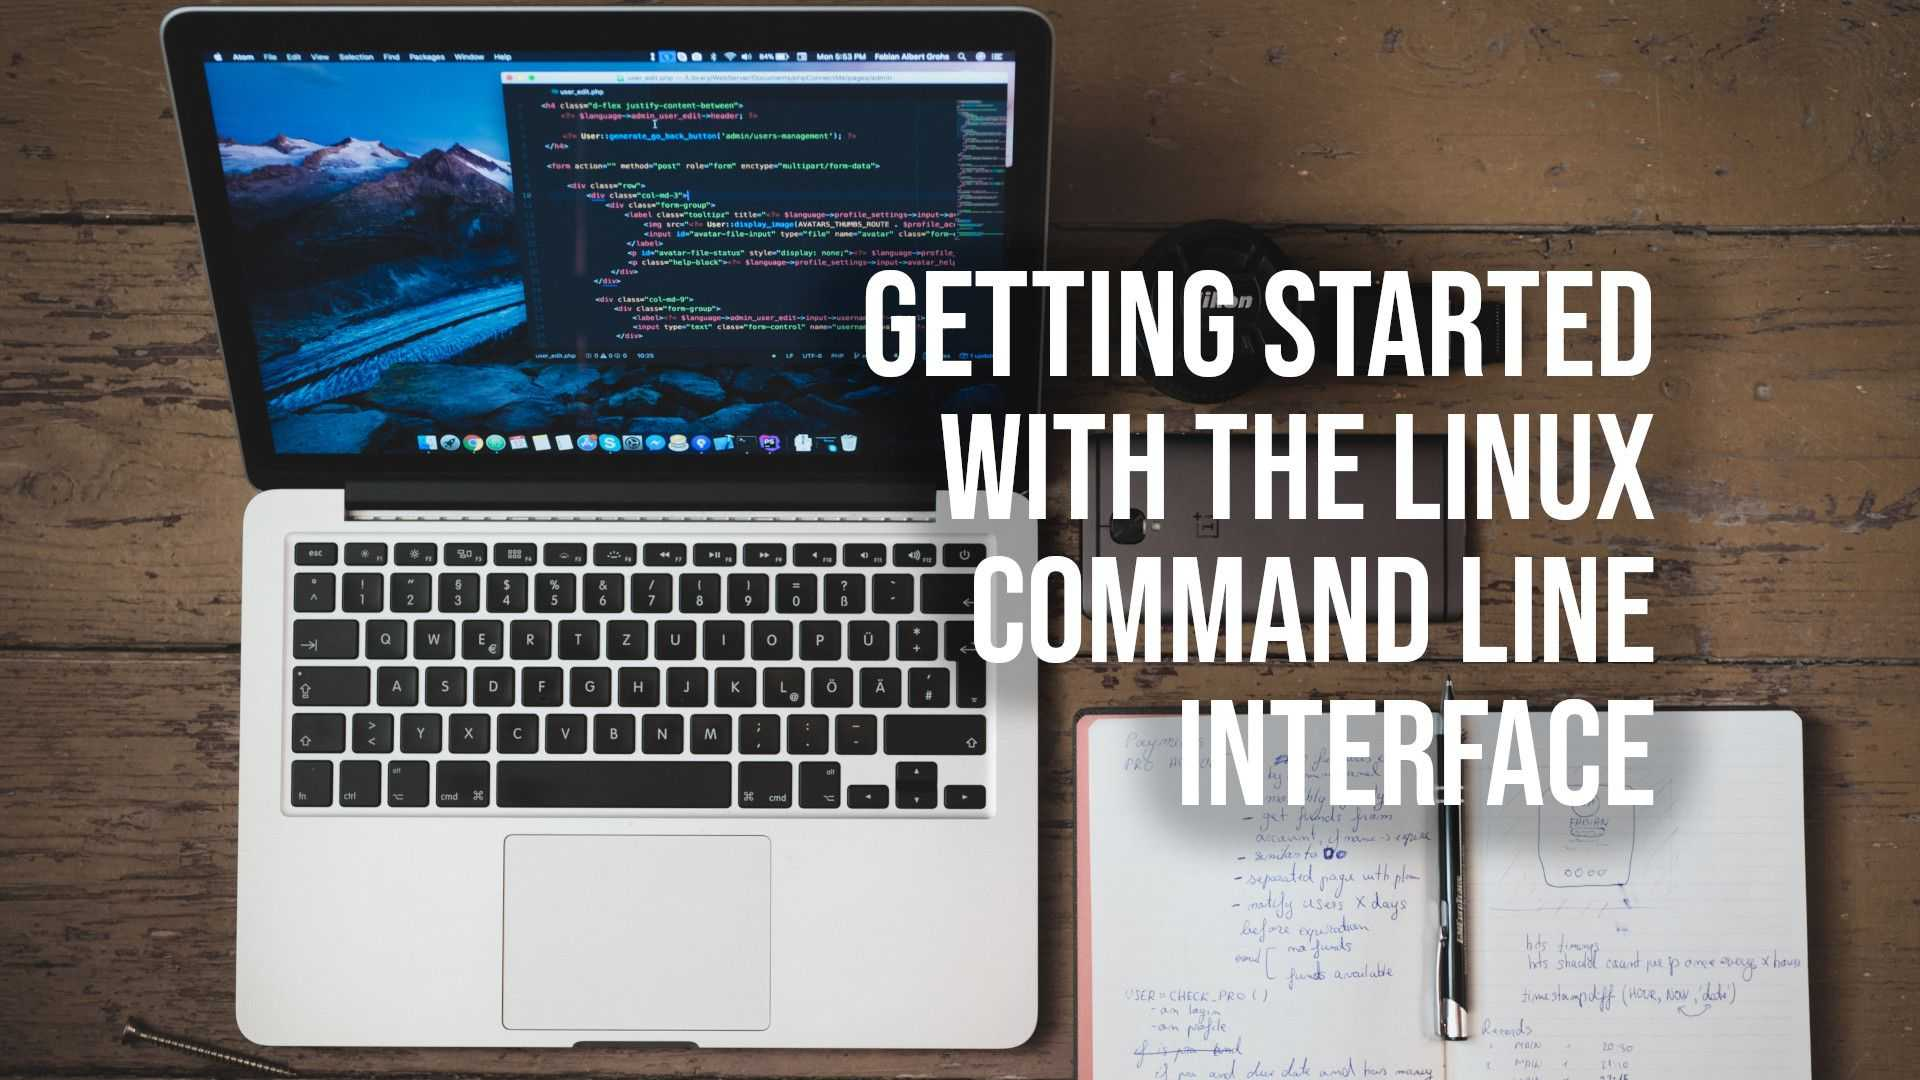 Getting Started with the Linux Command Line Interface